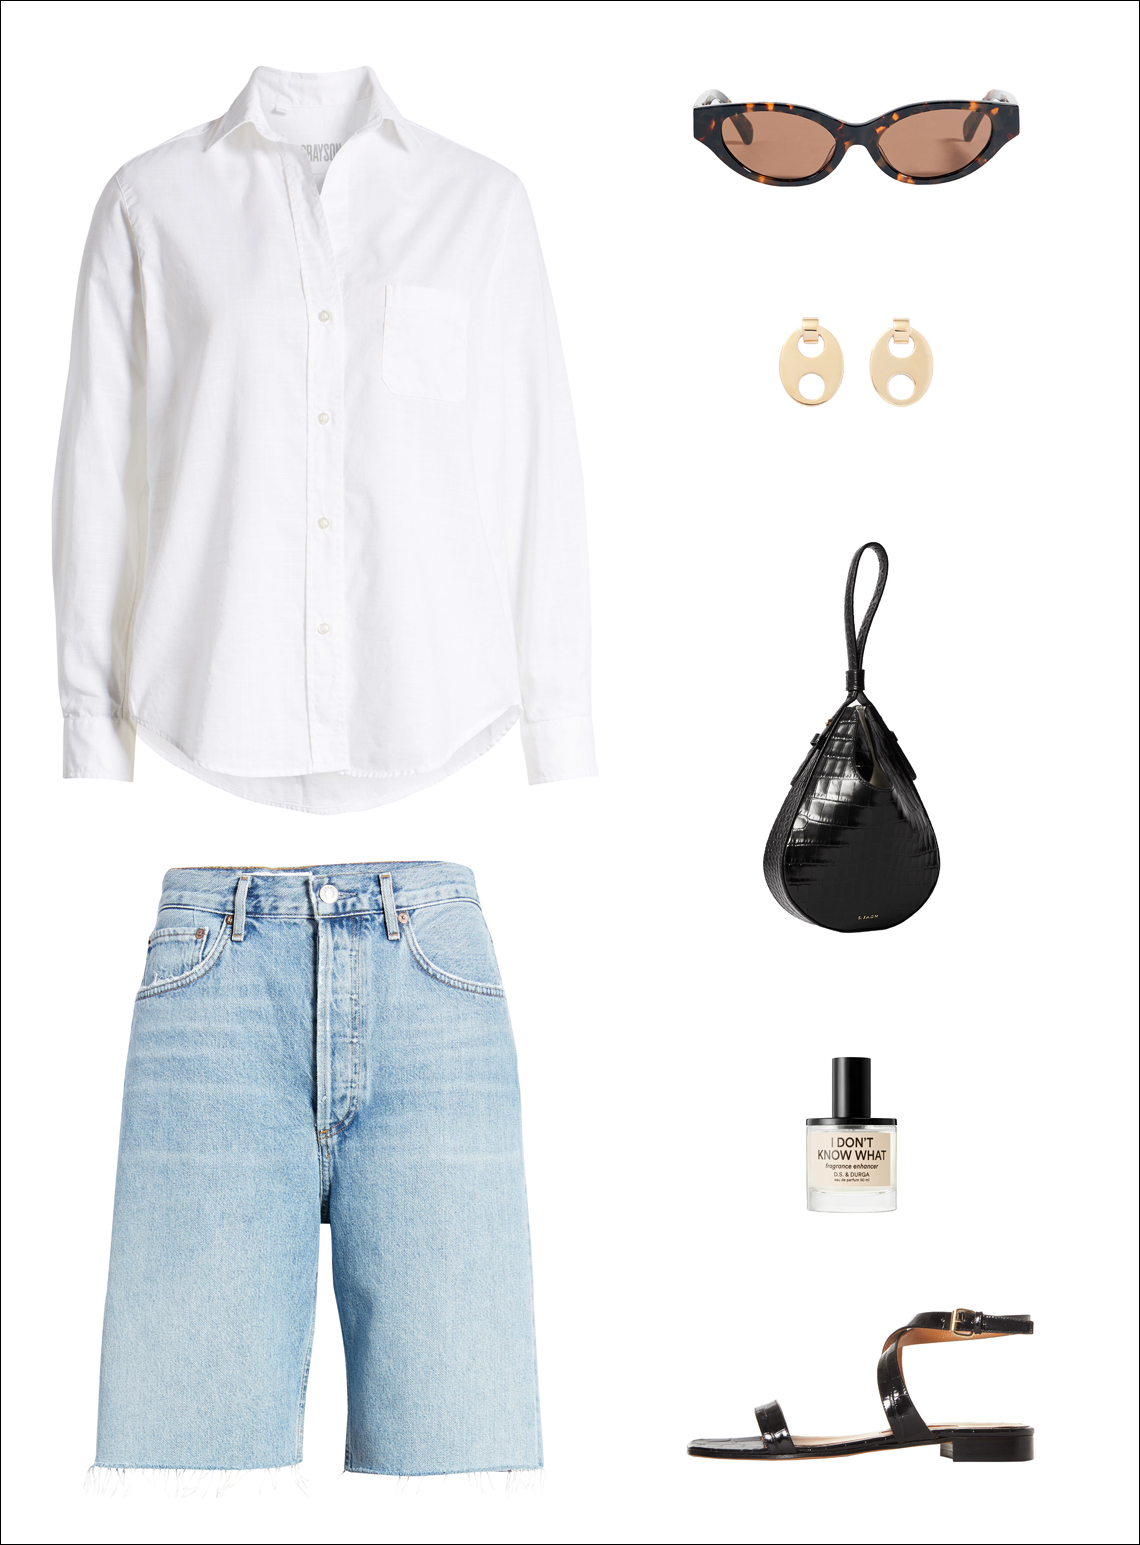 How to Wear Long Denim Shorts —Summer outfit with a white button-down shirt, cat-eye sunglasses, gold earrings, longline jean shorts, black mini bag, and flat sandals